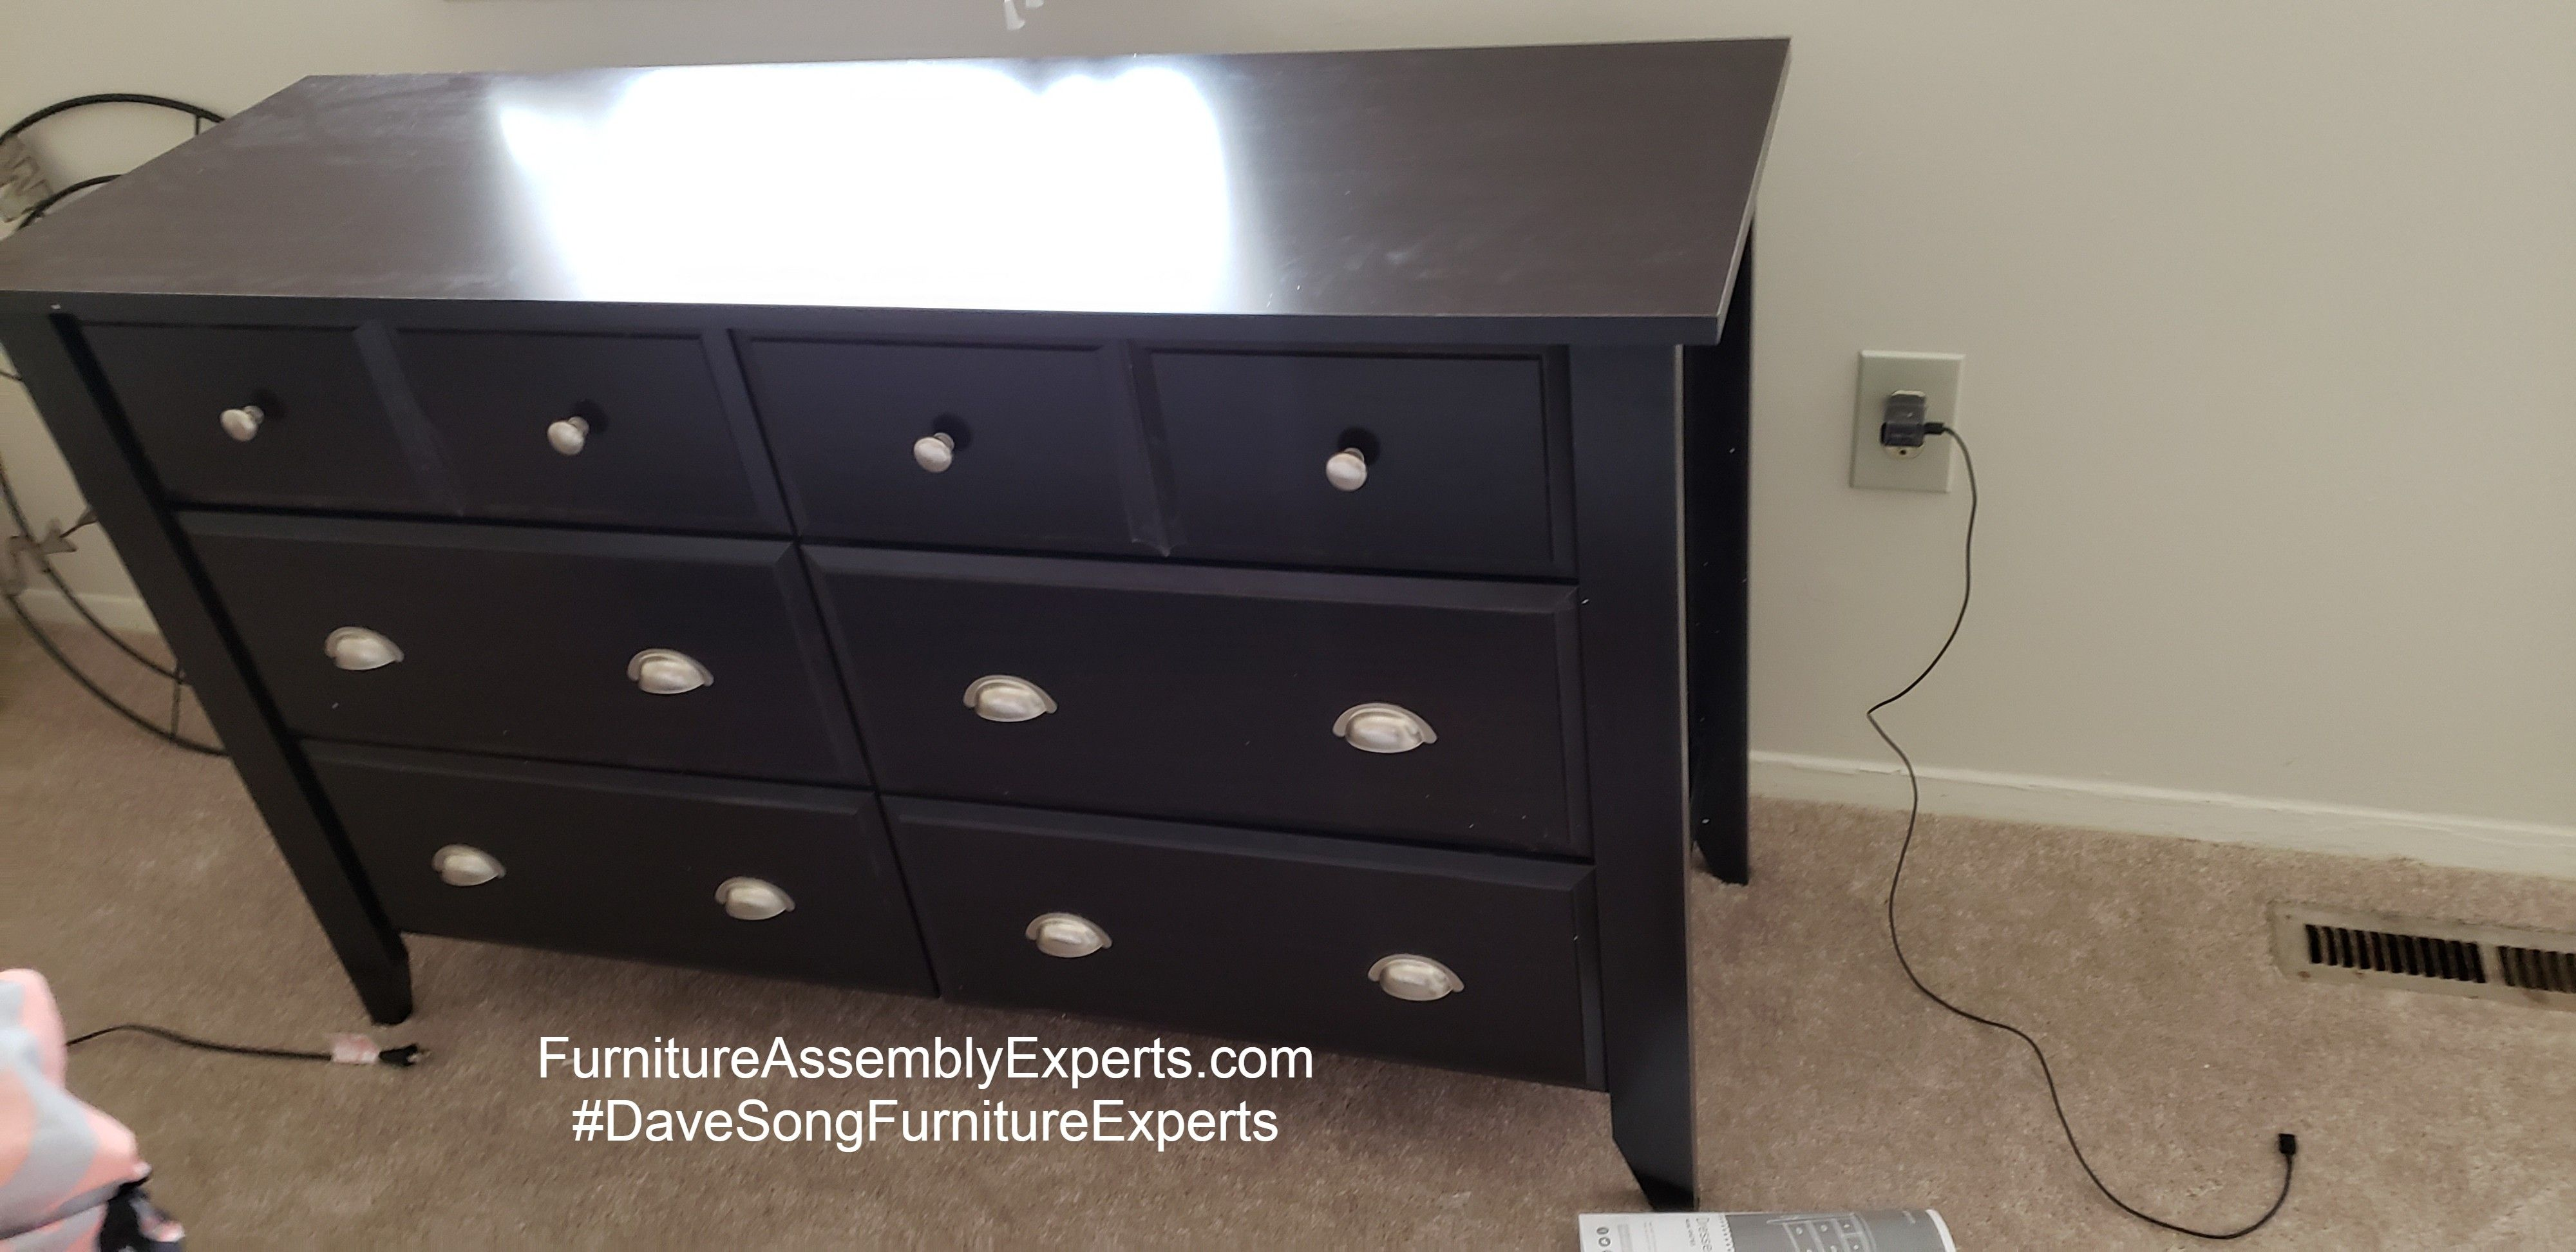 Same Day Furniture Assembly And Installation For Ikea Furniture